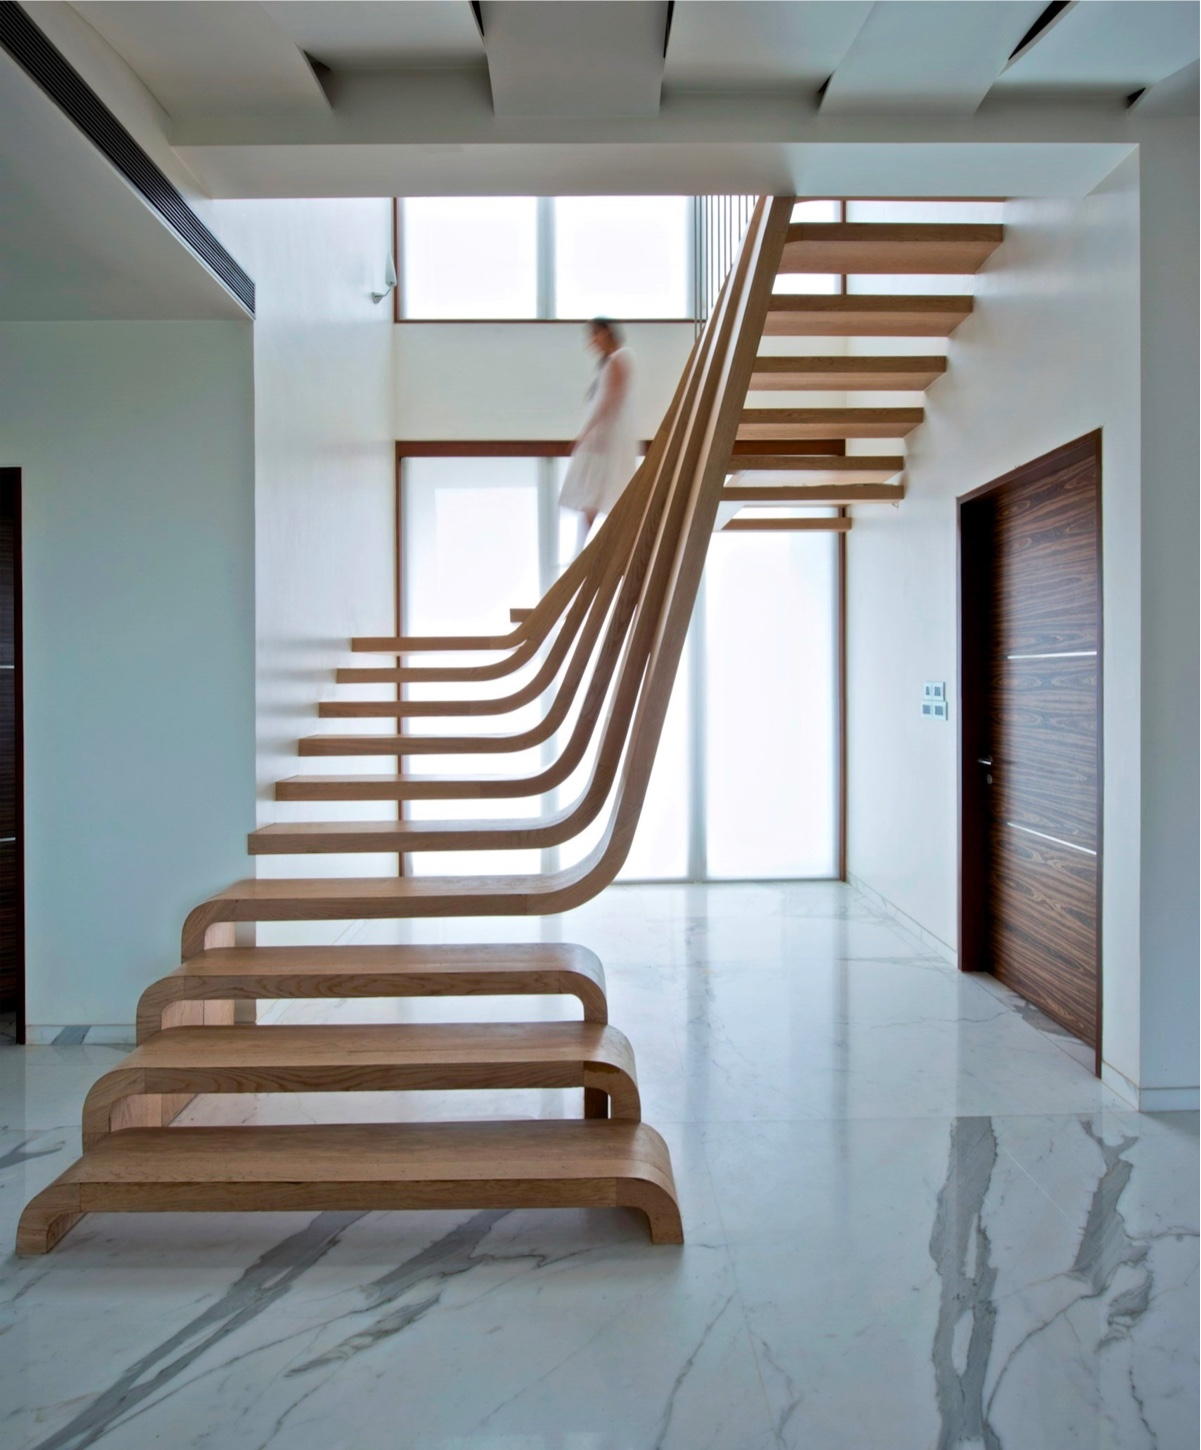 14 Staircases Design Ideas: 51 Stunning Staircase Design Ideas